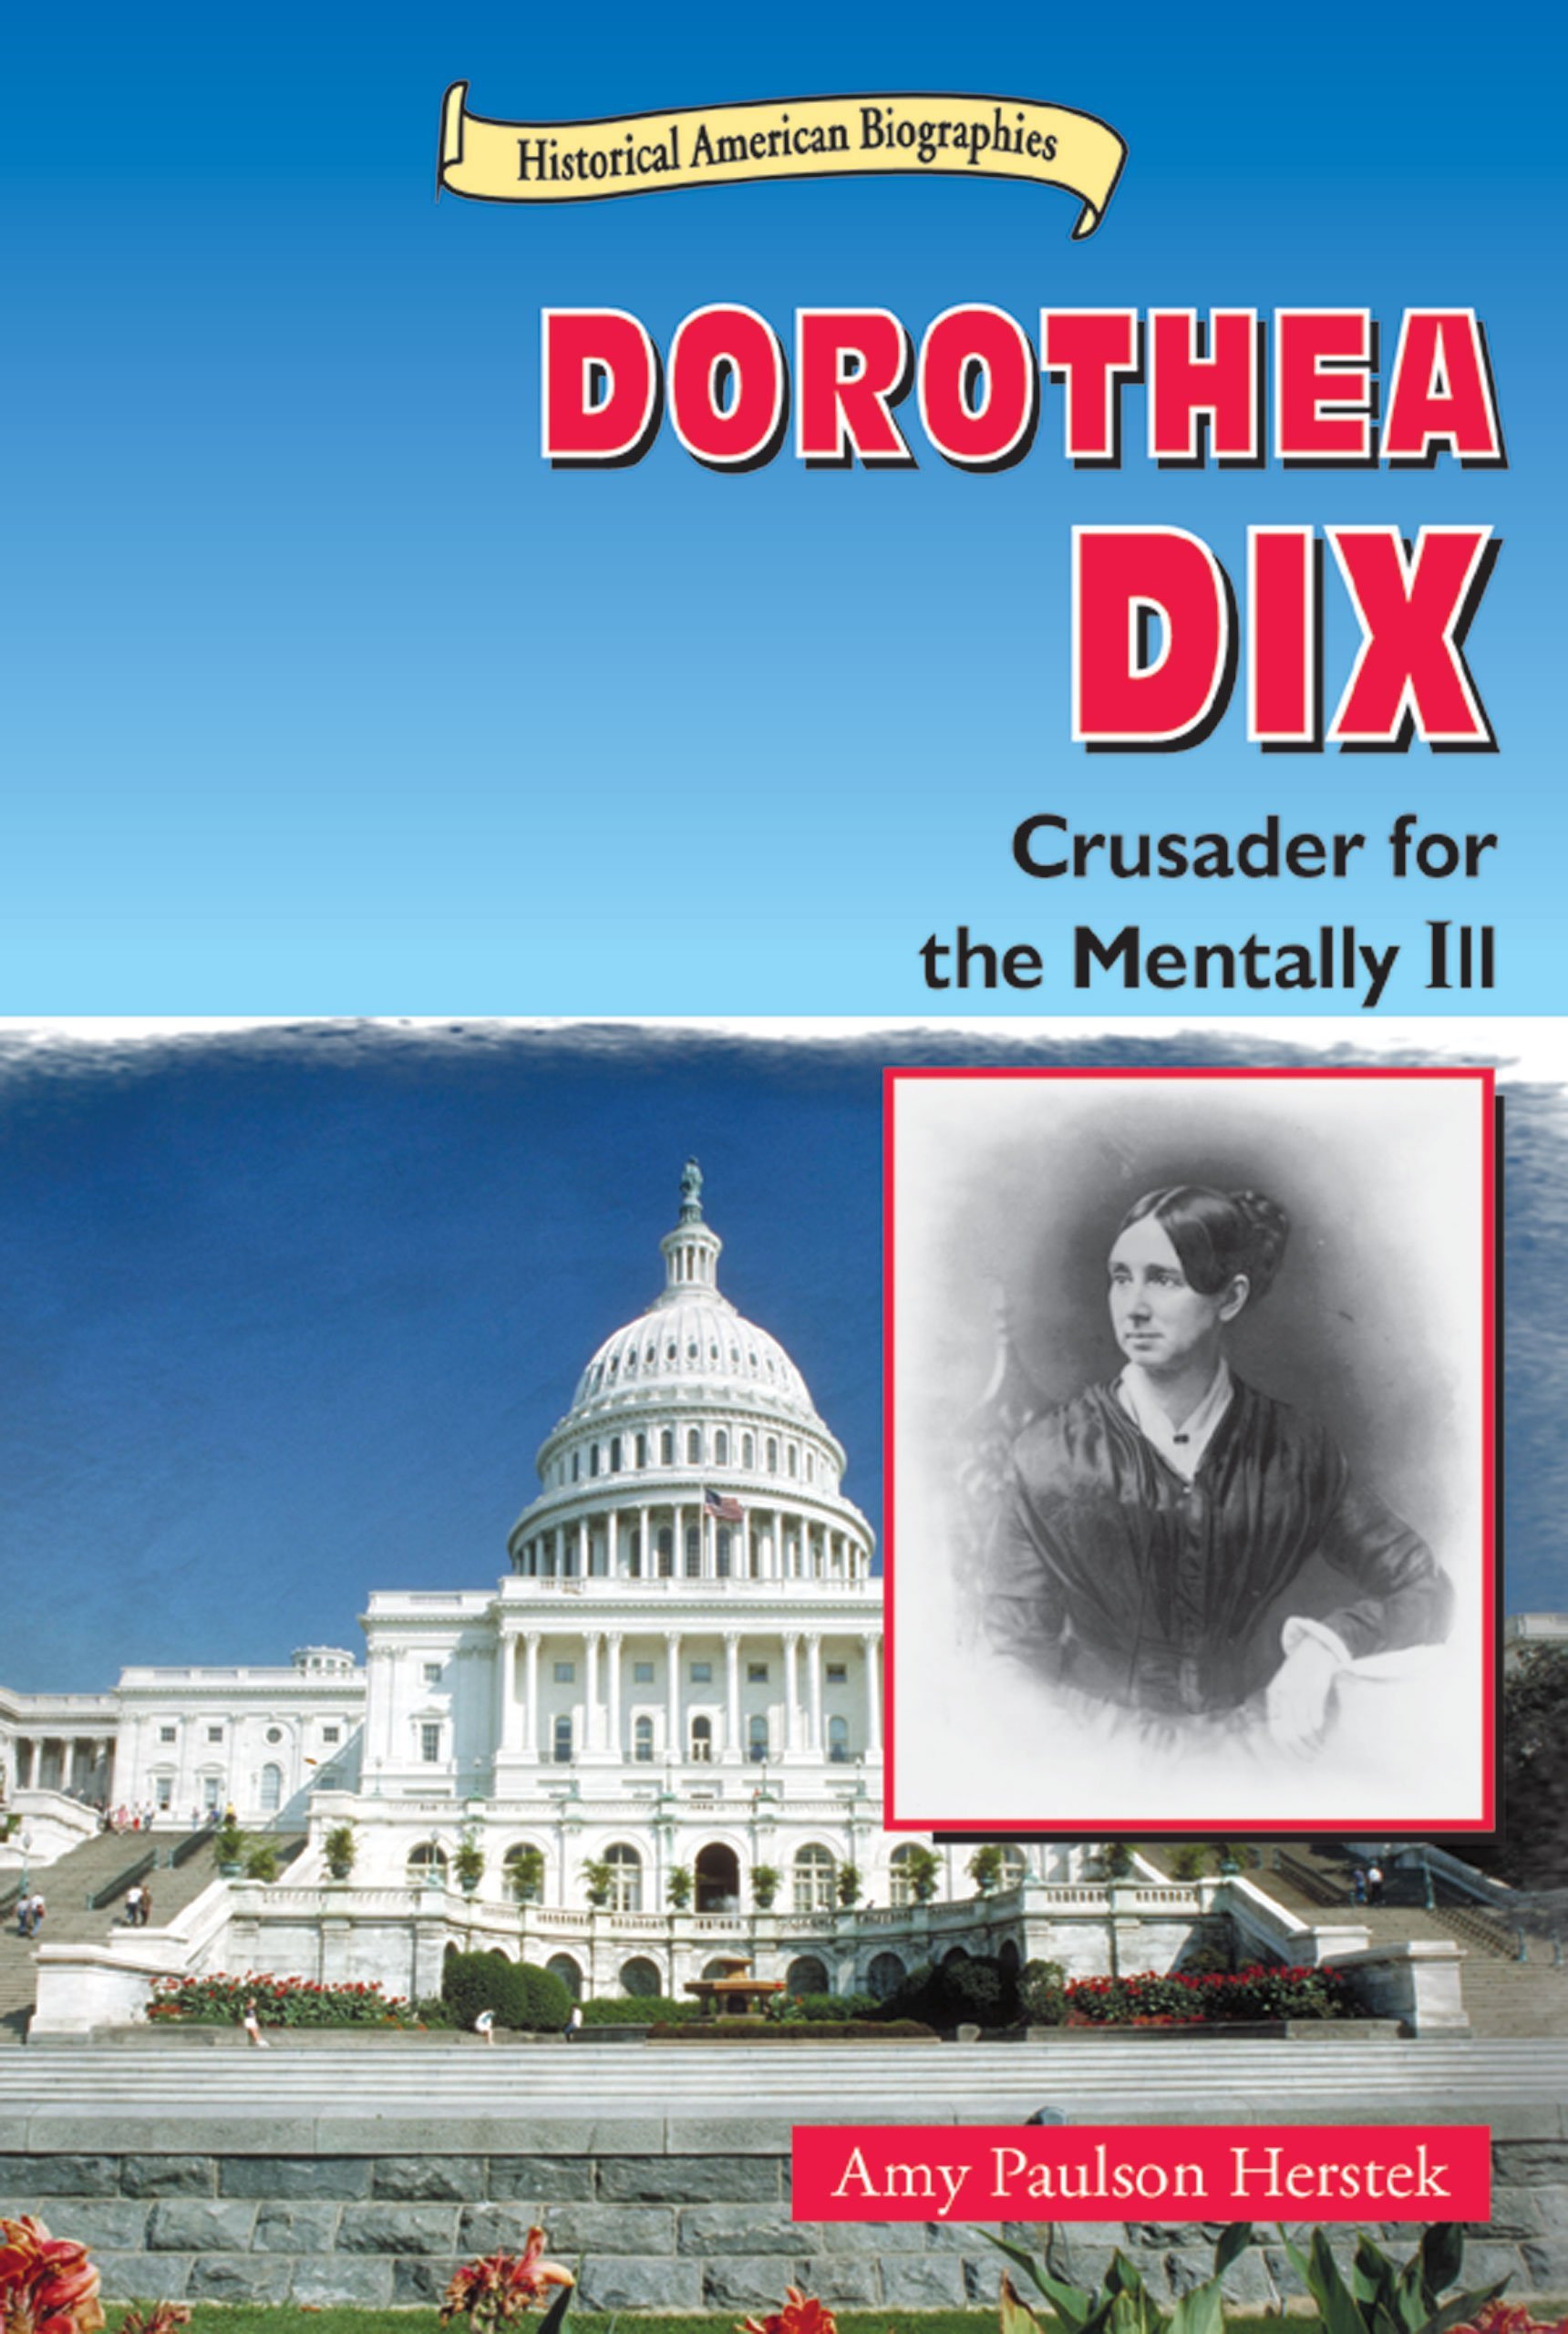 Dorothea Dix: Crusader for the Mentally Ill (Historical American Biographies)